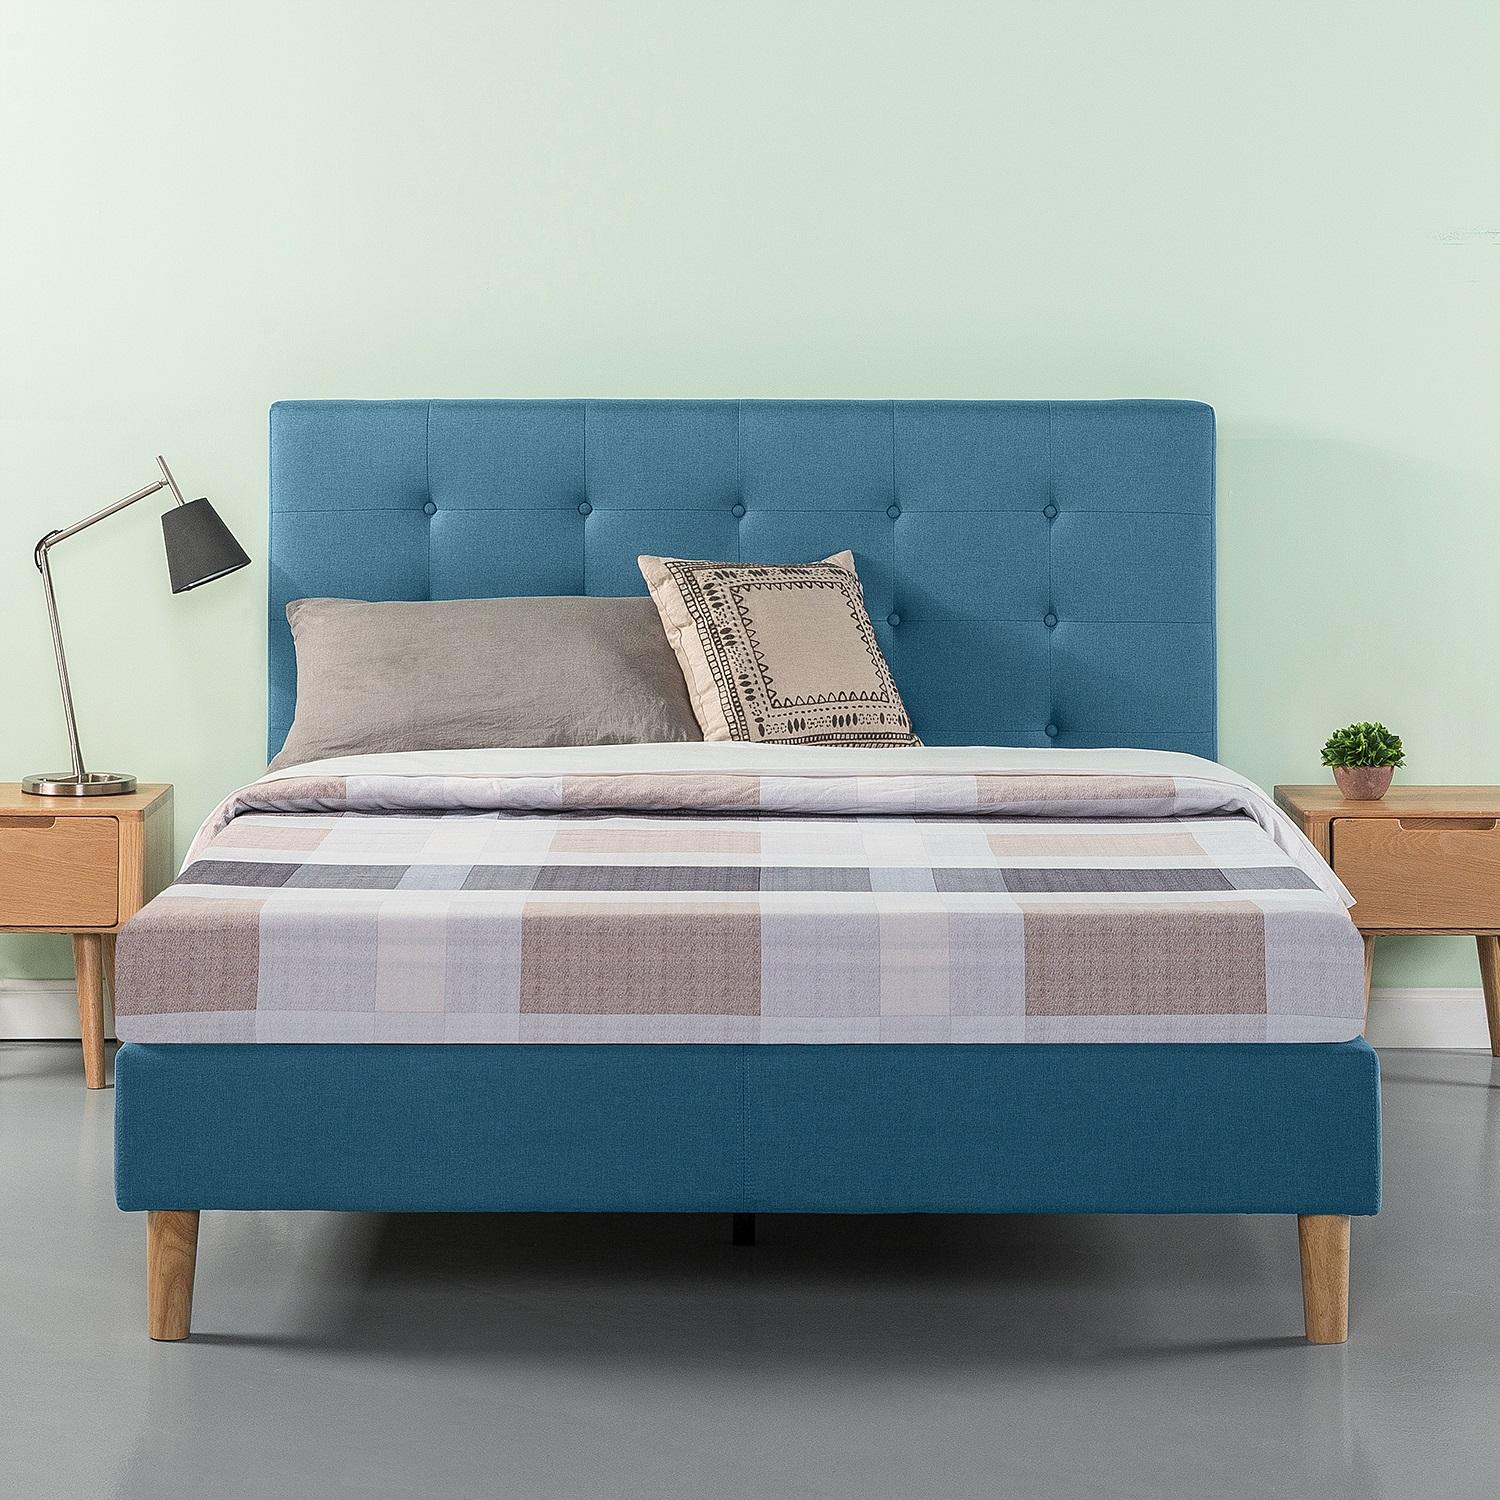 Zinus Button Tufted Platform Bed – Riverside Blue